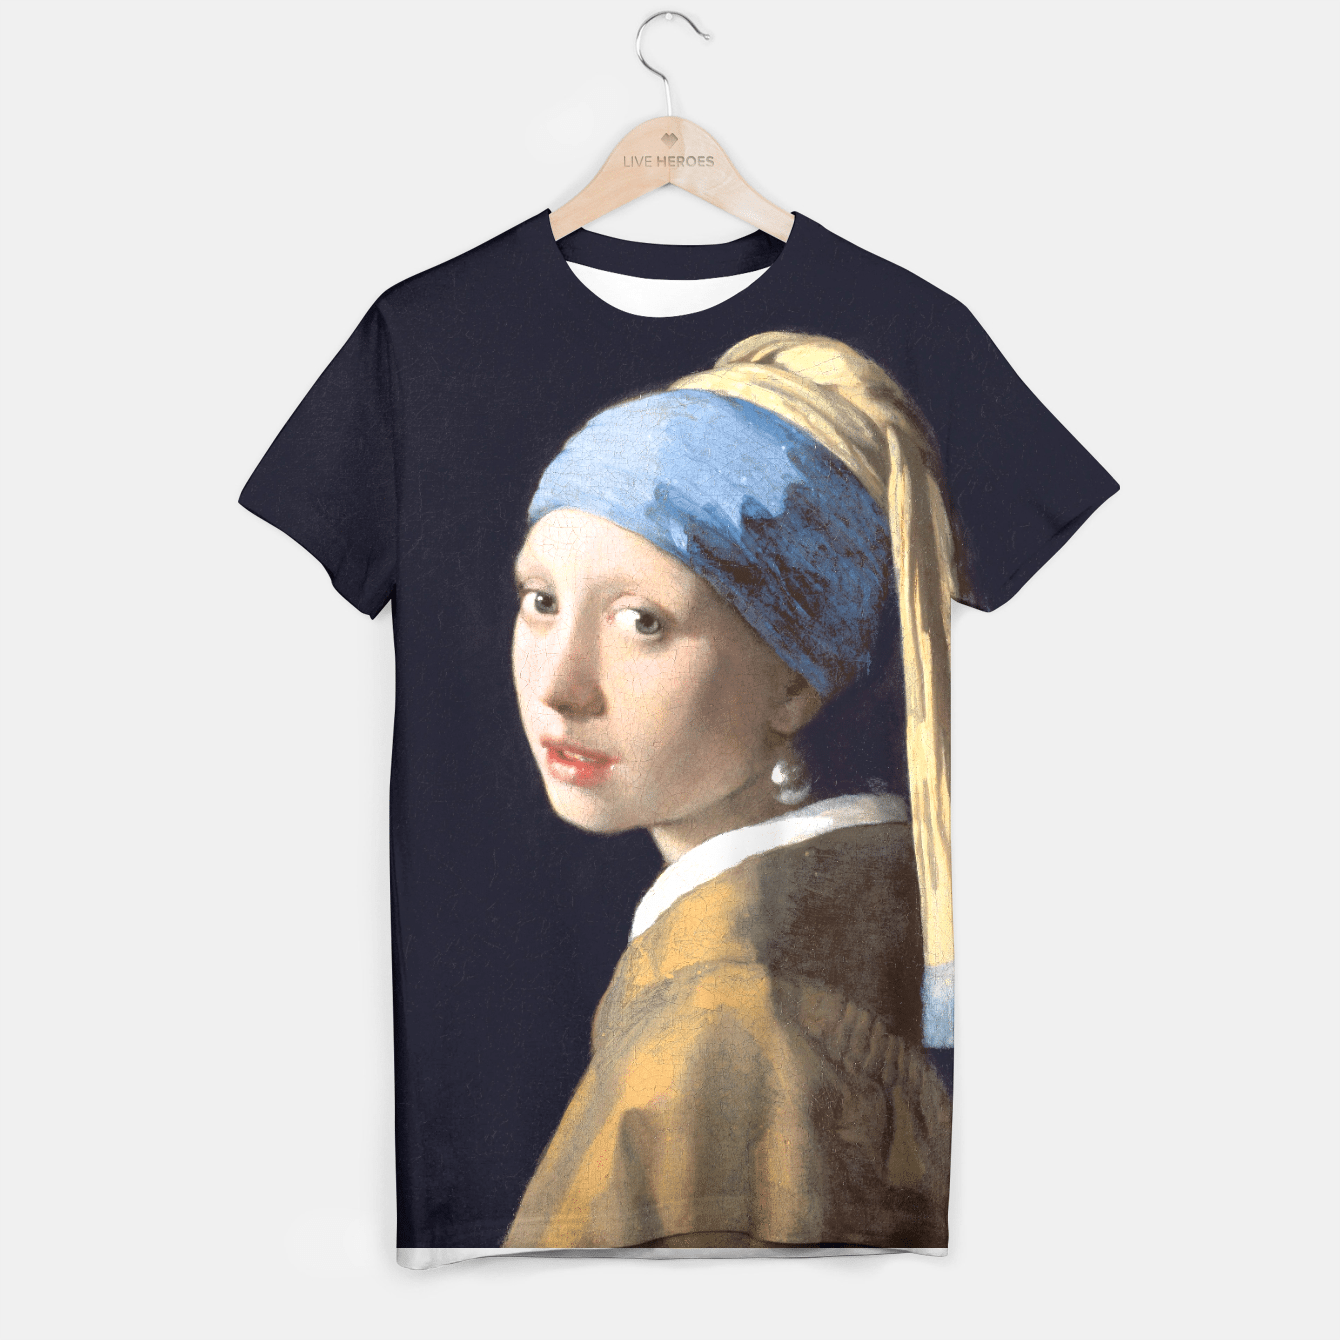 GiRL WiTH A PEARL EARRiNG BY JOHANNES VERMEER T-shirt, Live Heroes